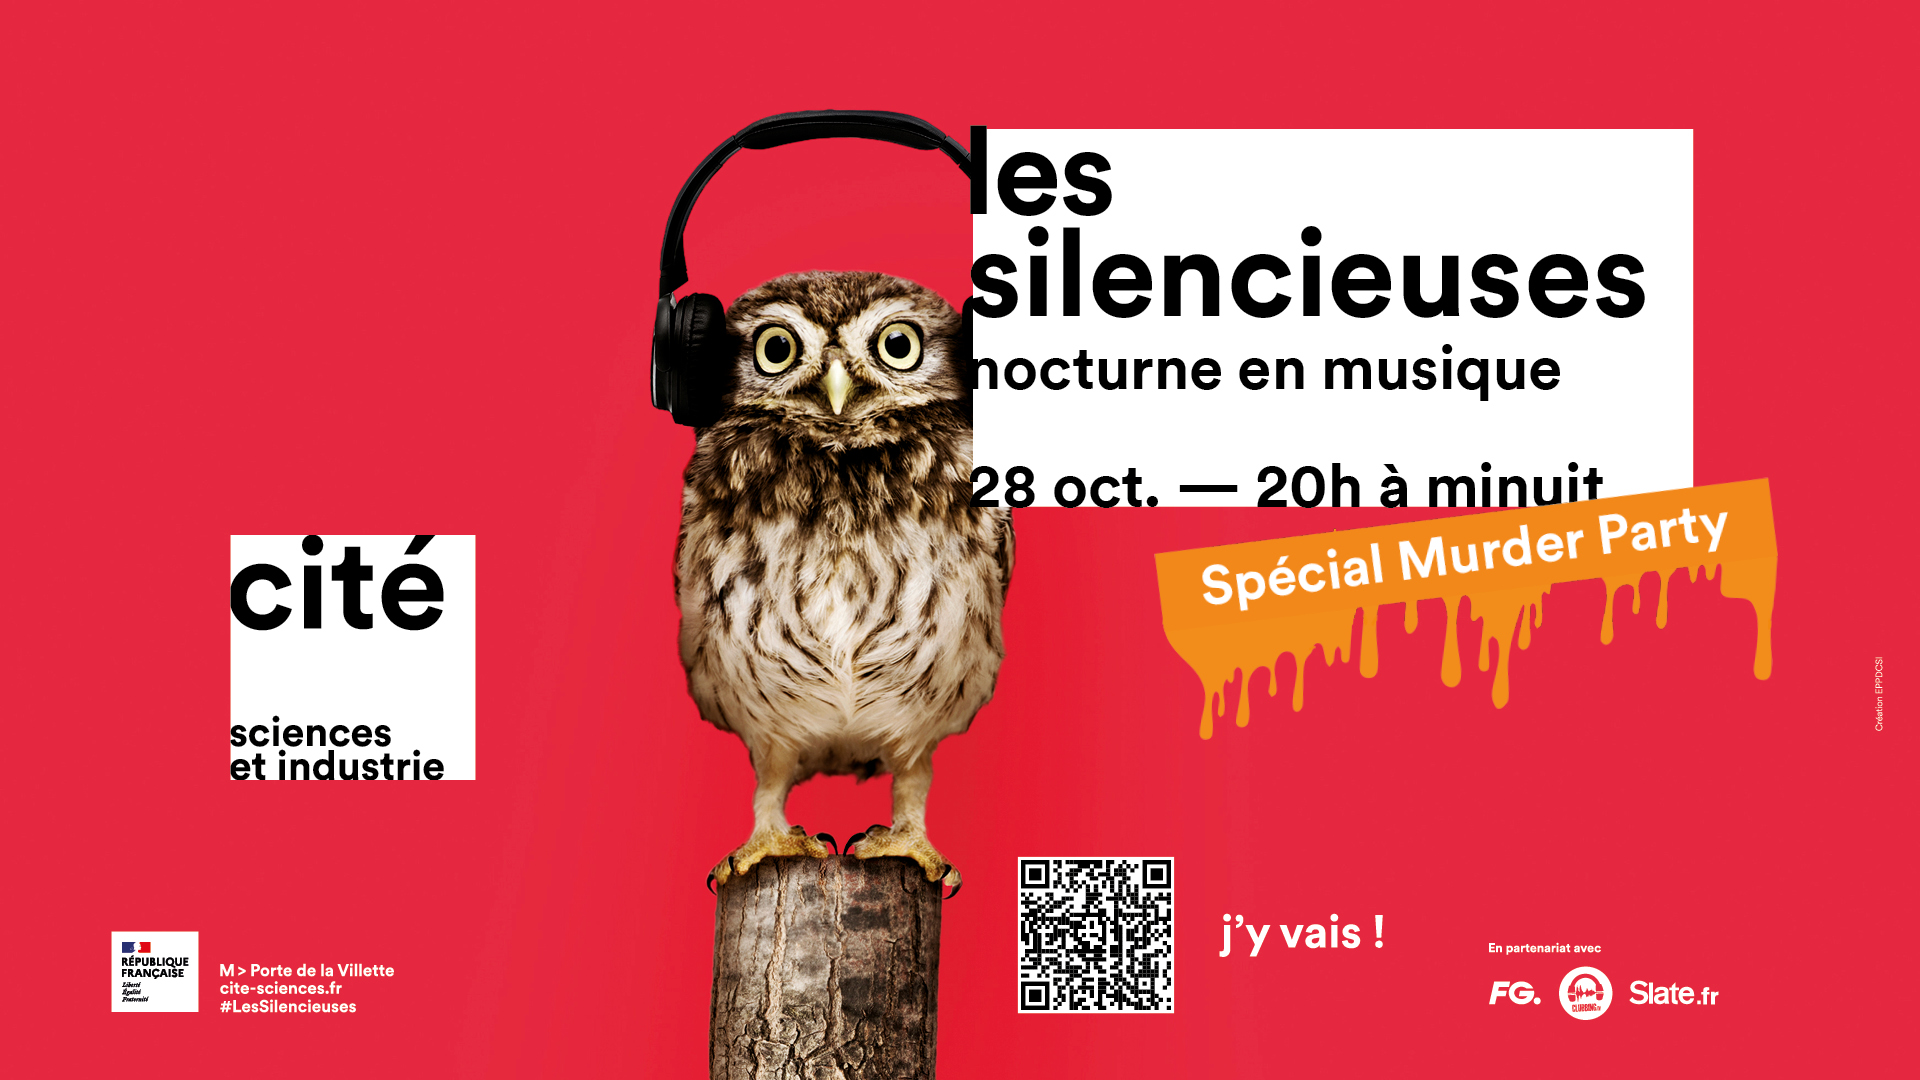 Les Silencieuses is the next unmissable event!